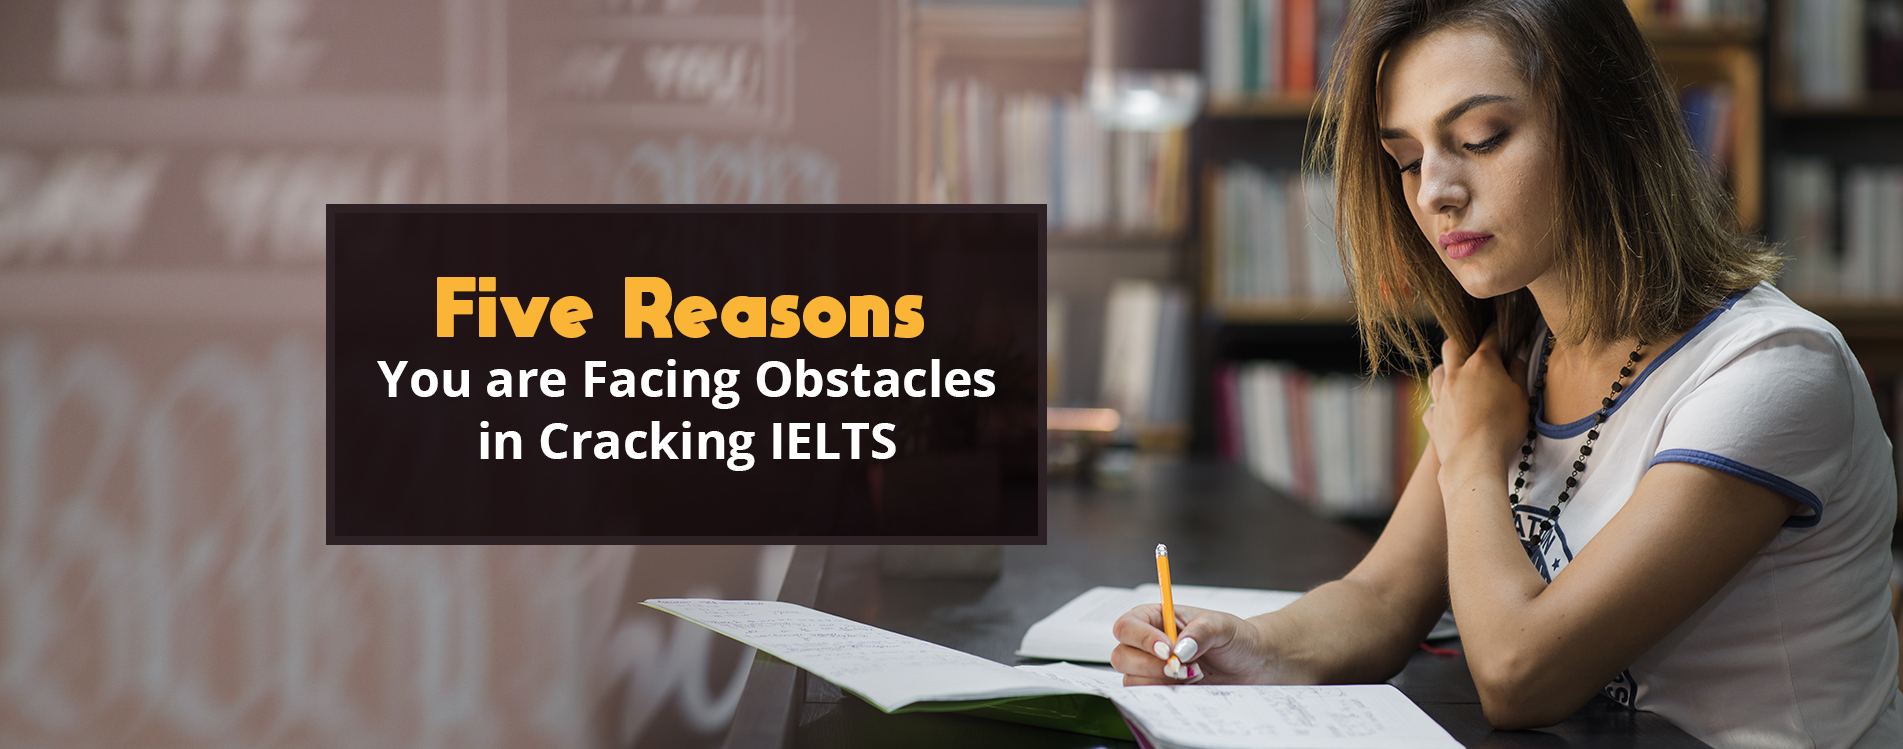 Five Reasons You are Facing Obstacles in Cracking IELTS